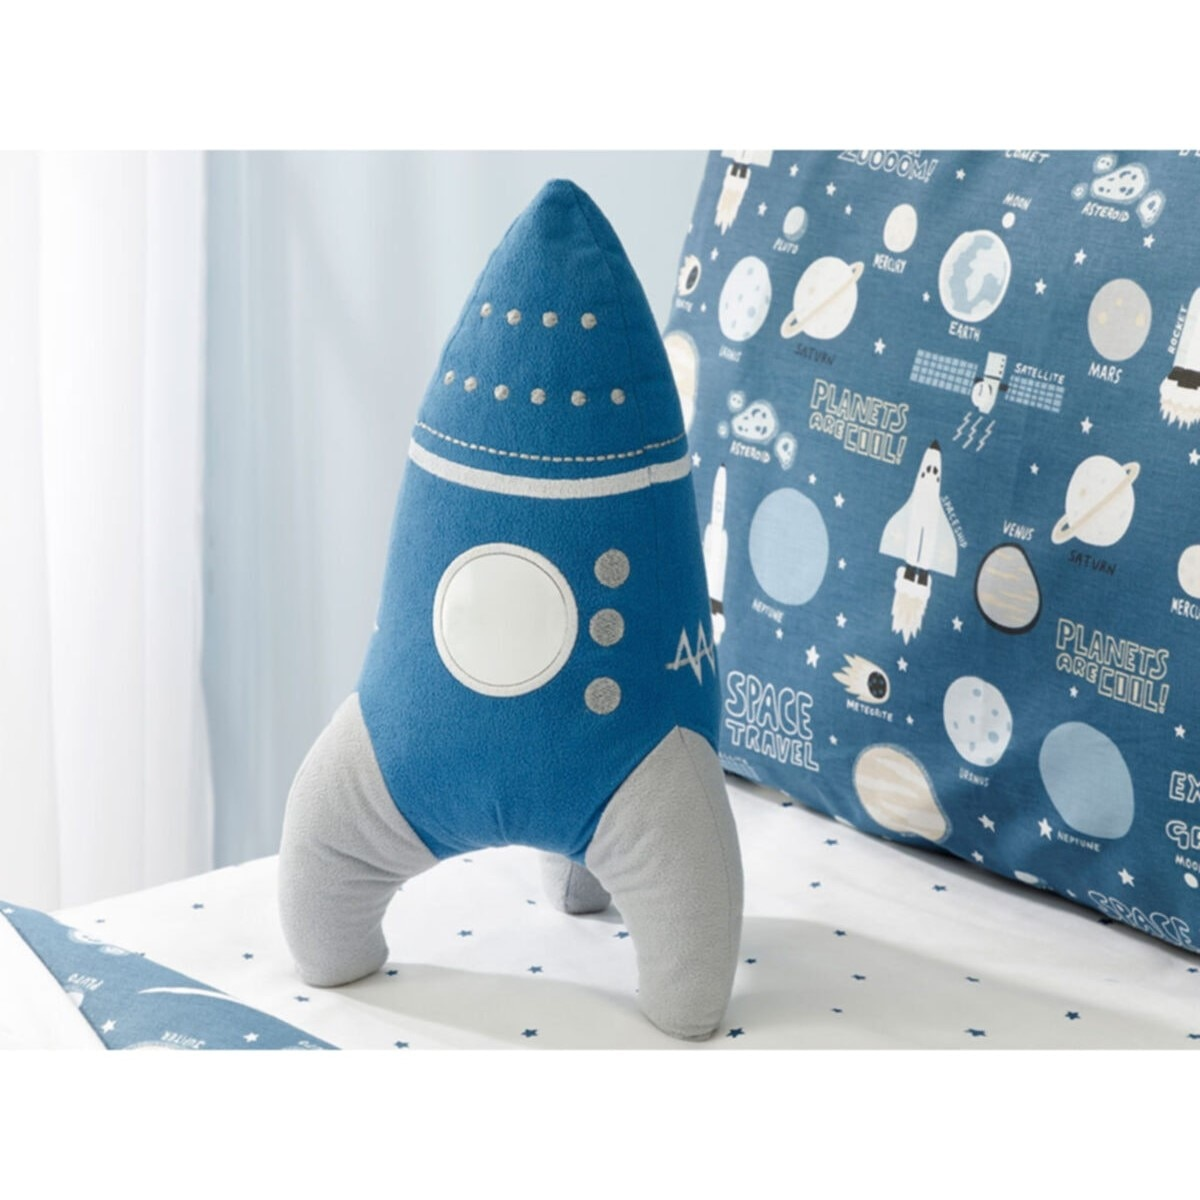 Blue Space Decorative Cushion Rocket Kids baby adult car home lovely lovely cute new pillow cover antibacterial stain resistant